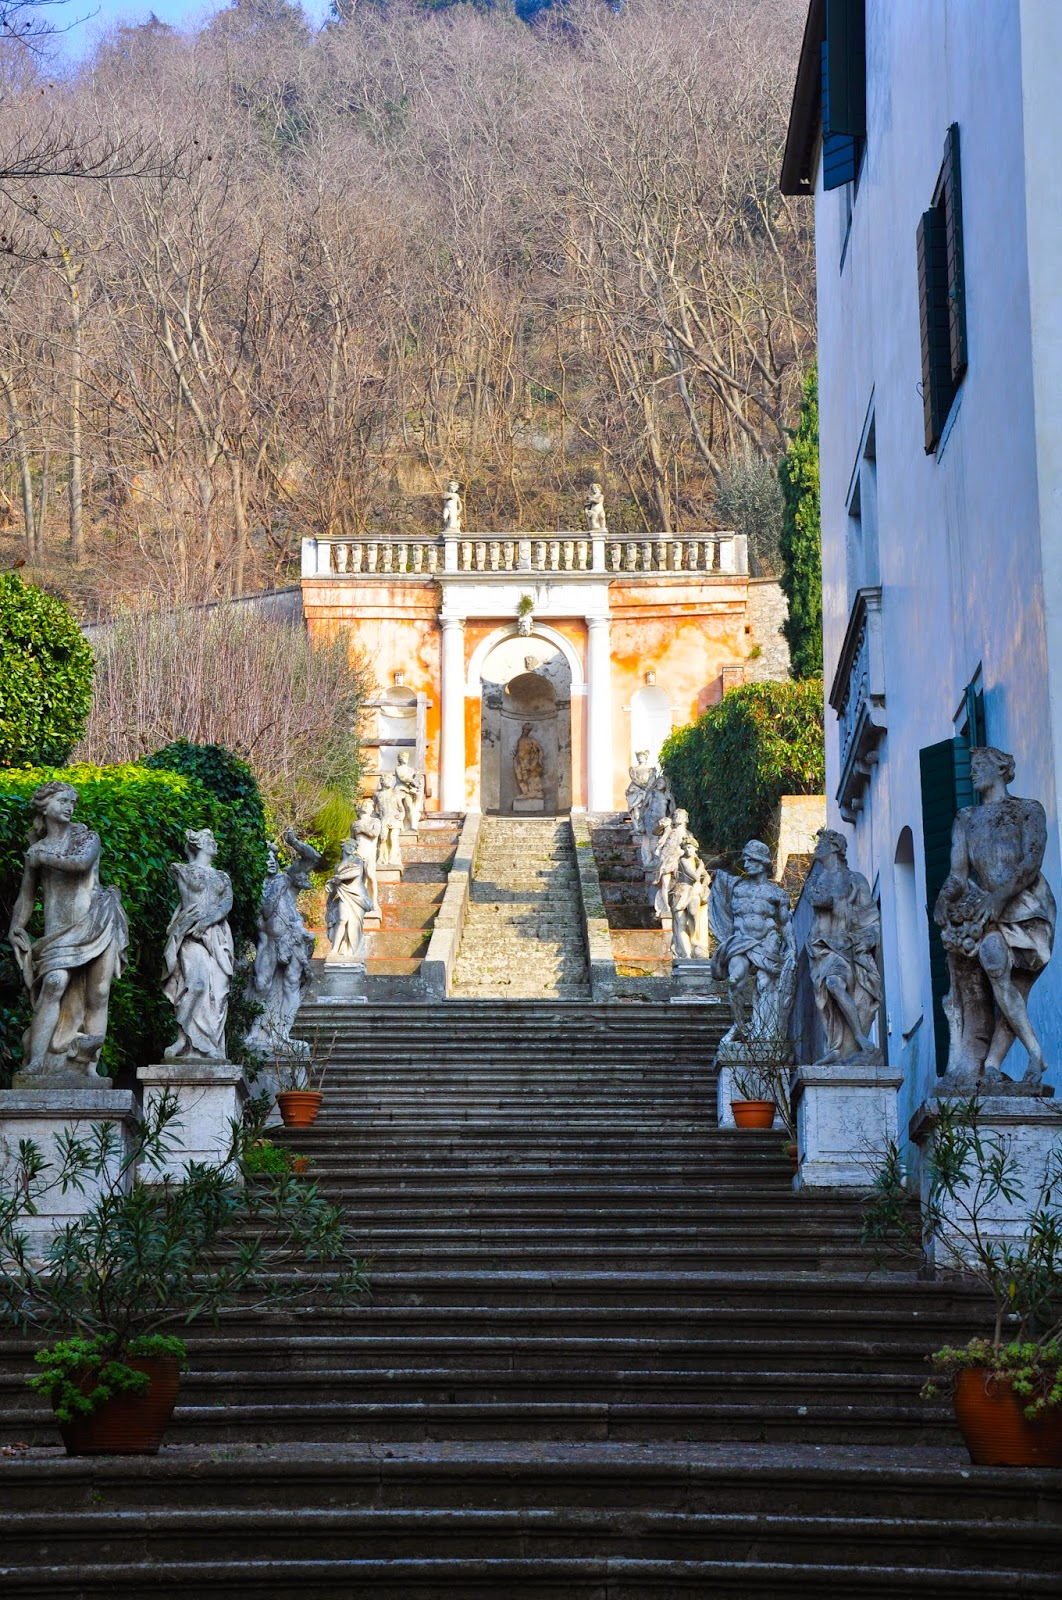 The stairs of the Villa dei Nanni in Monselice, Euganean Hills, Veneto, Italy